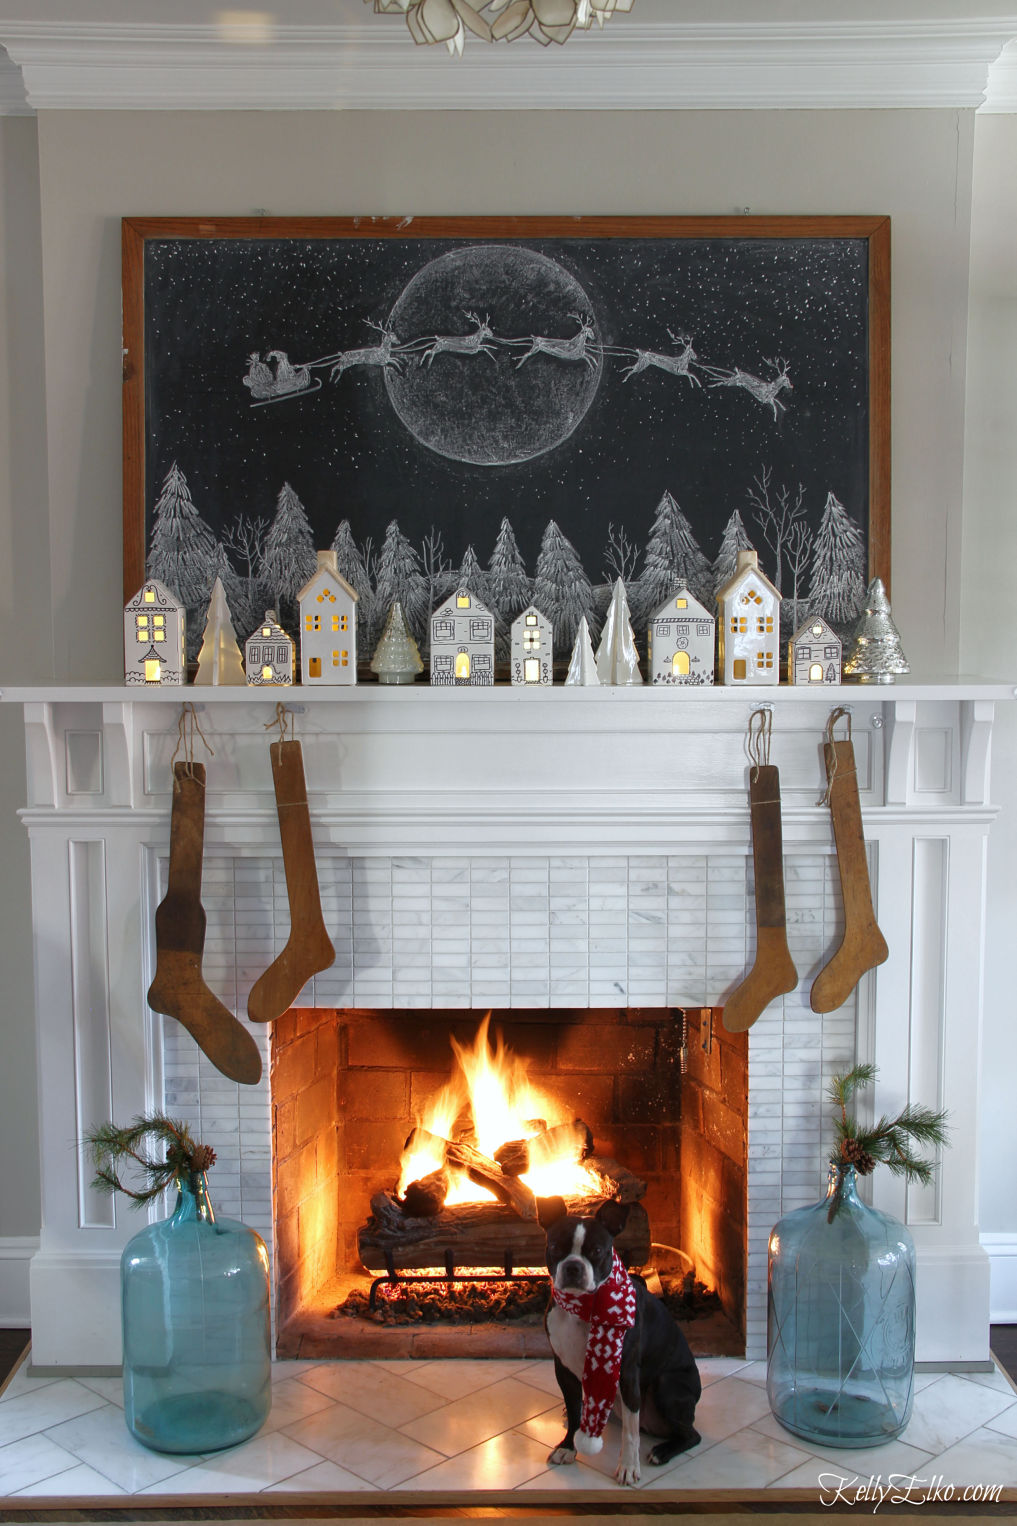 Cheery Christmas Home Tour - love the chalkboard art of Santa and his reindeer kellyelko.com #christmasdecor #christmasmantel #farmhousechristmas #christmashometour #christmasstockings